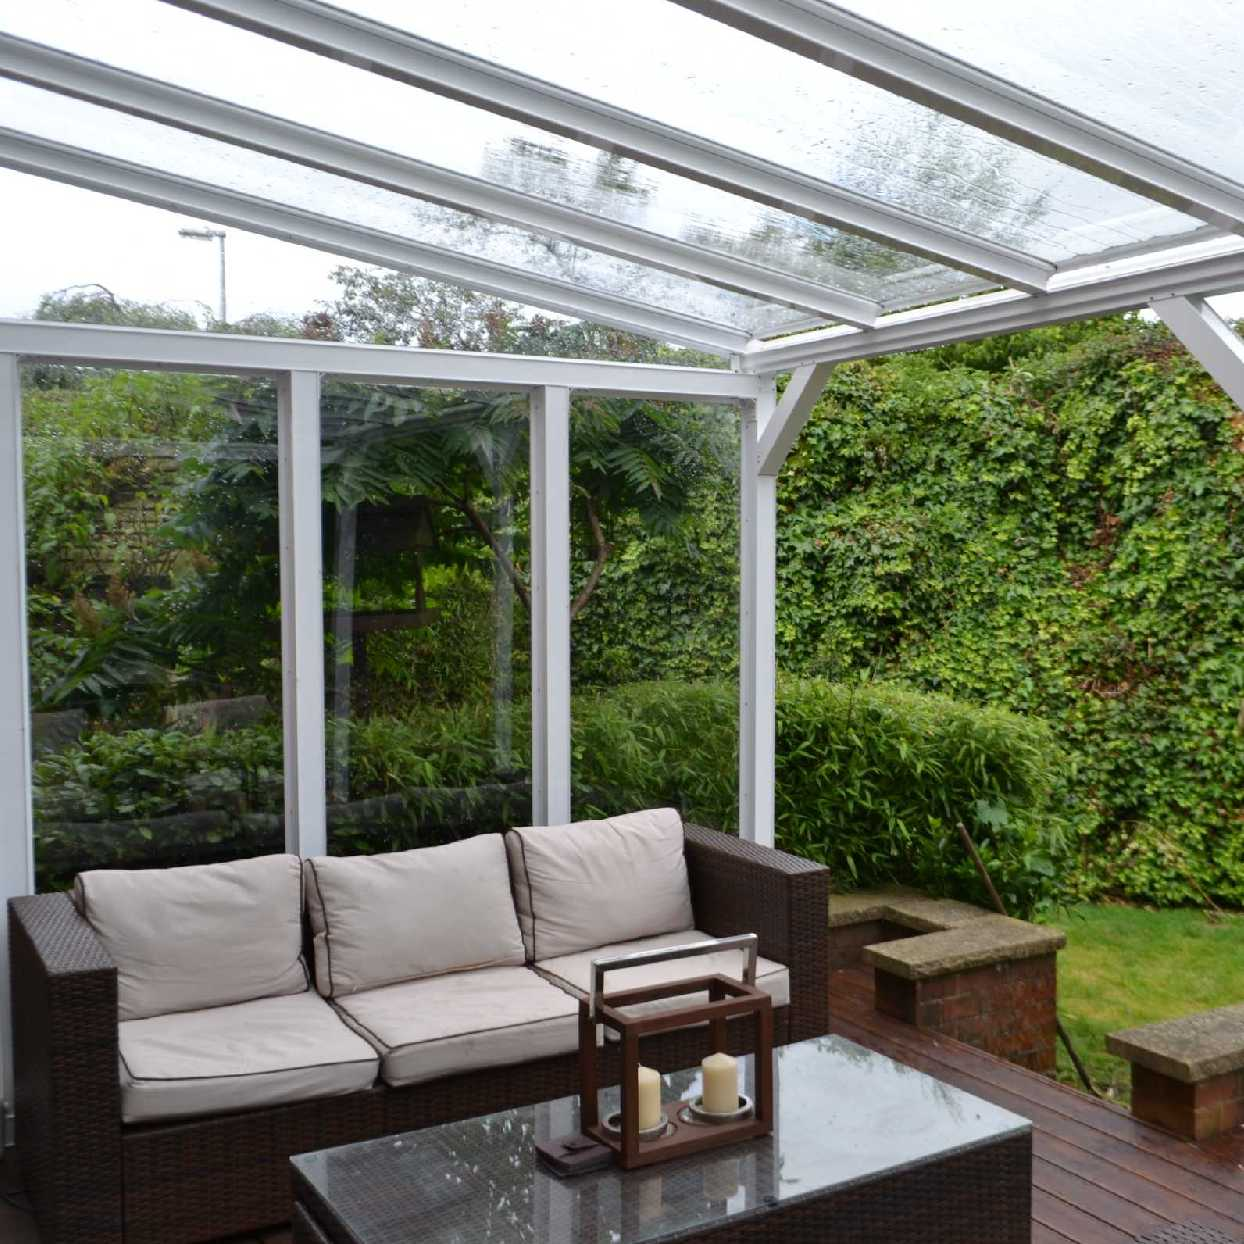 Great selection of Omega Smart Lean-To Canopy with 16mm Polycarbonate Glazing - 7.4m (W) x 1.5m (P), (4) Supporting Posts